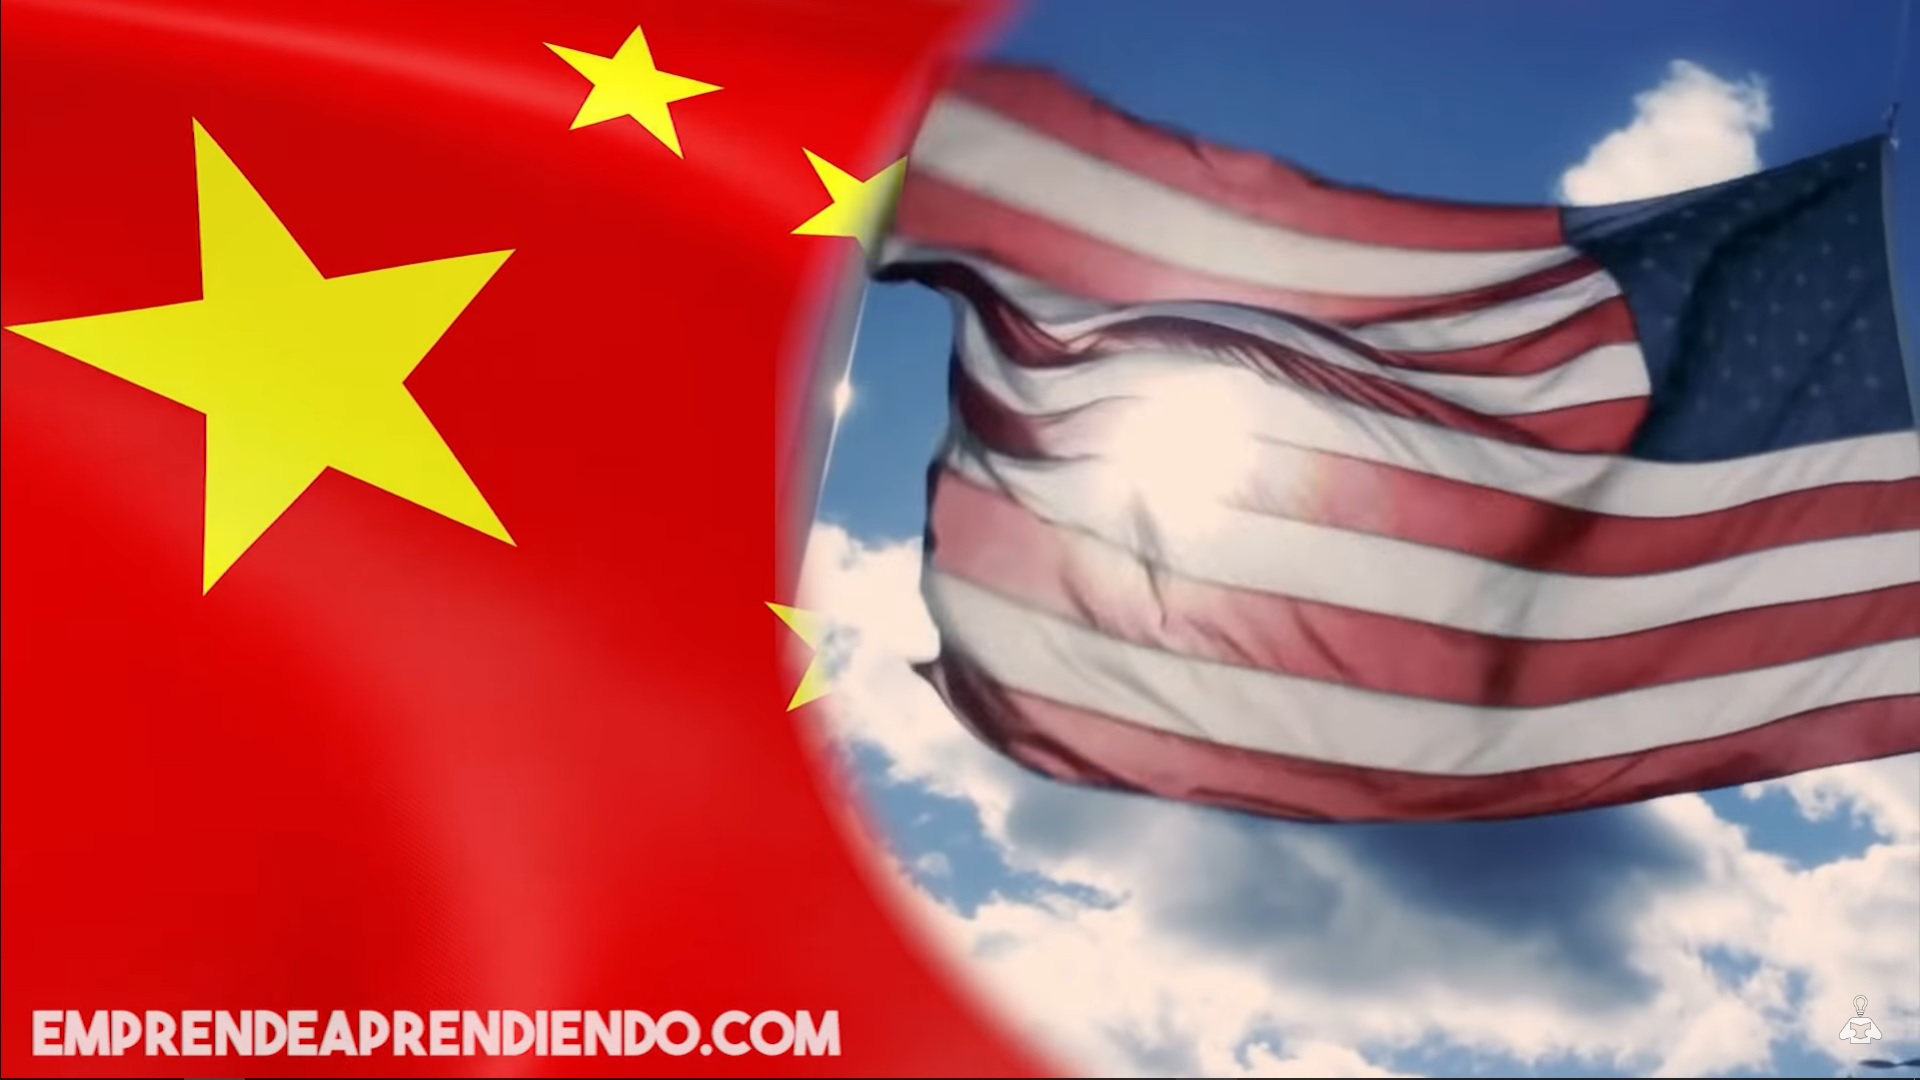 La guerra comercial de Estados Unidos y China explicado muy simple